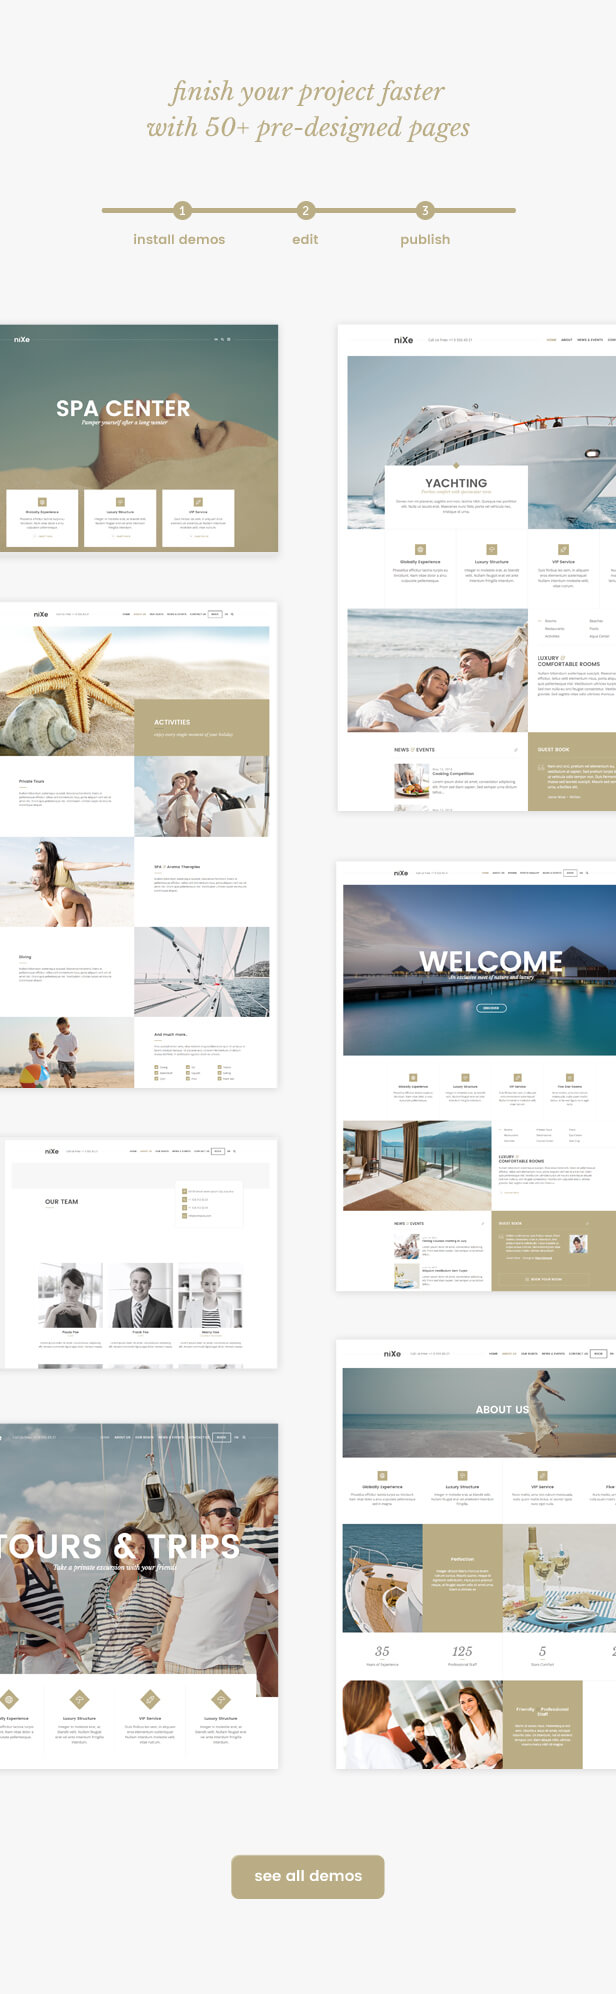 pre designed pages - Nixe | Hotel, Travel and Holiday WordPress Theme